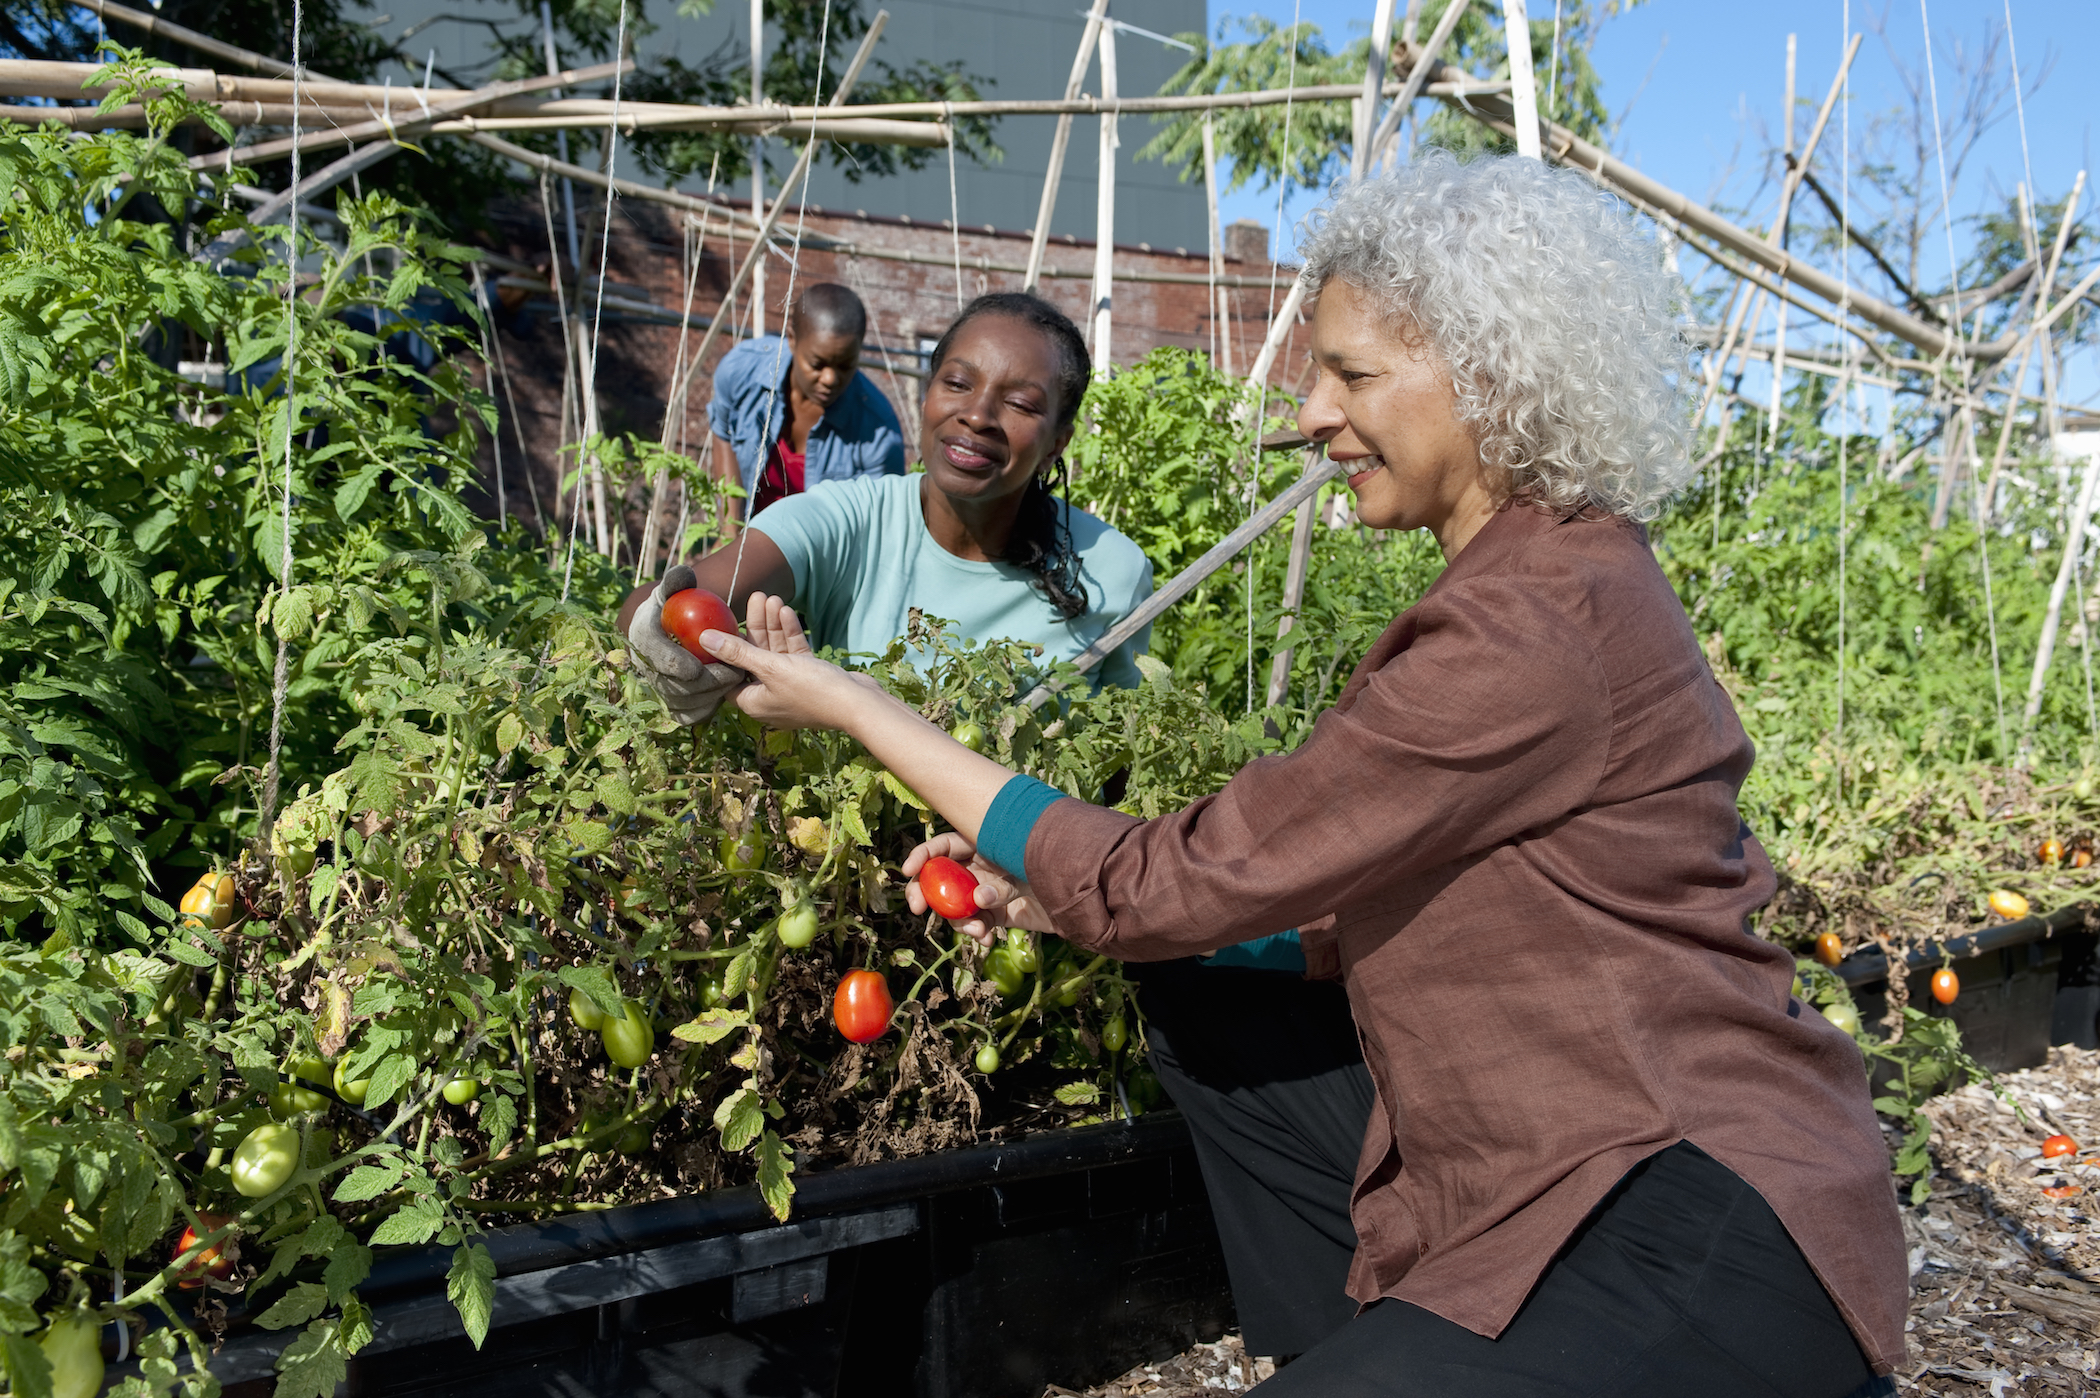 Women work together tending to tomatoes in a community garden.